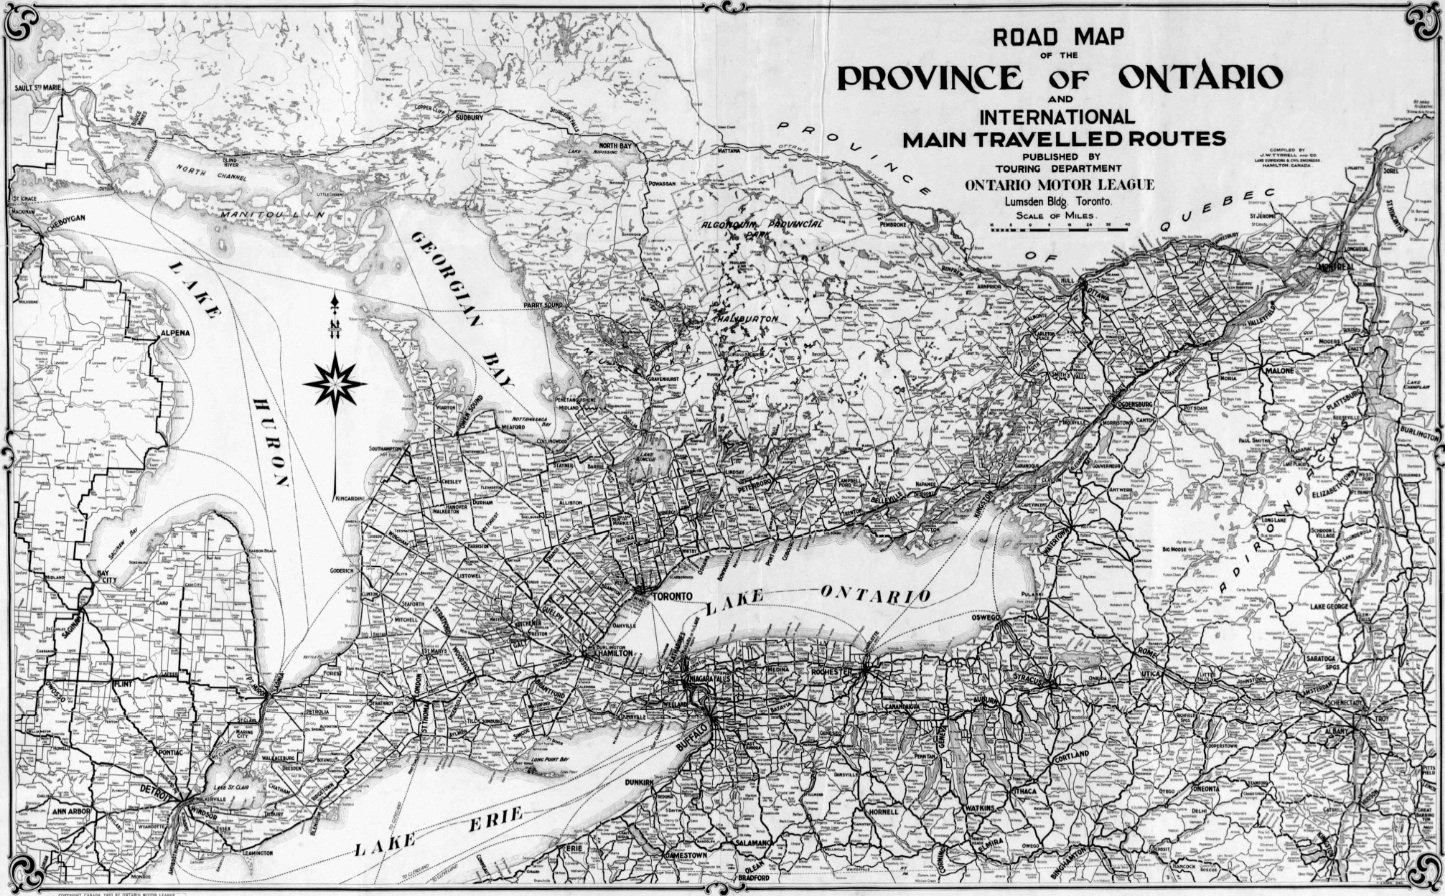 Figure 1: Ontario Motor League, Road Map of the Province of Ontario and International Main Travelled Routes